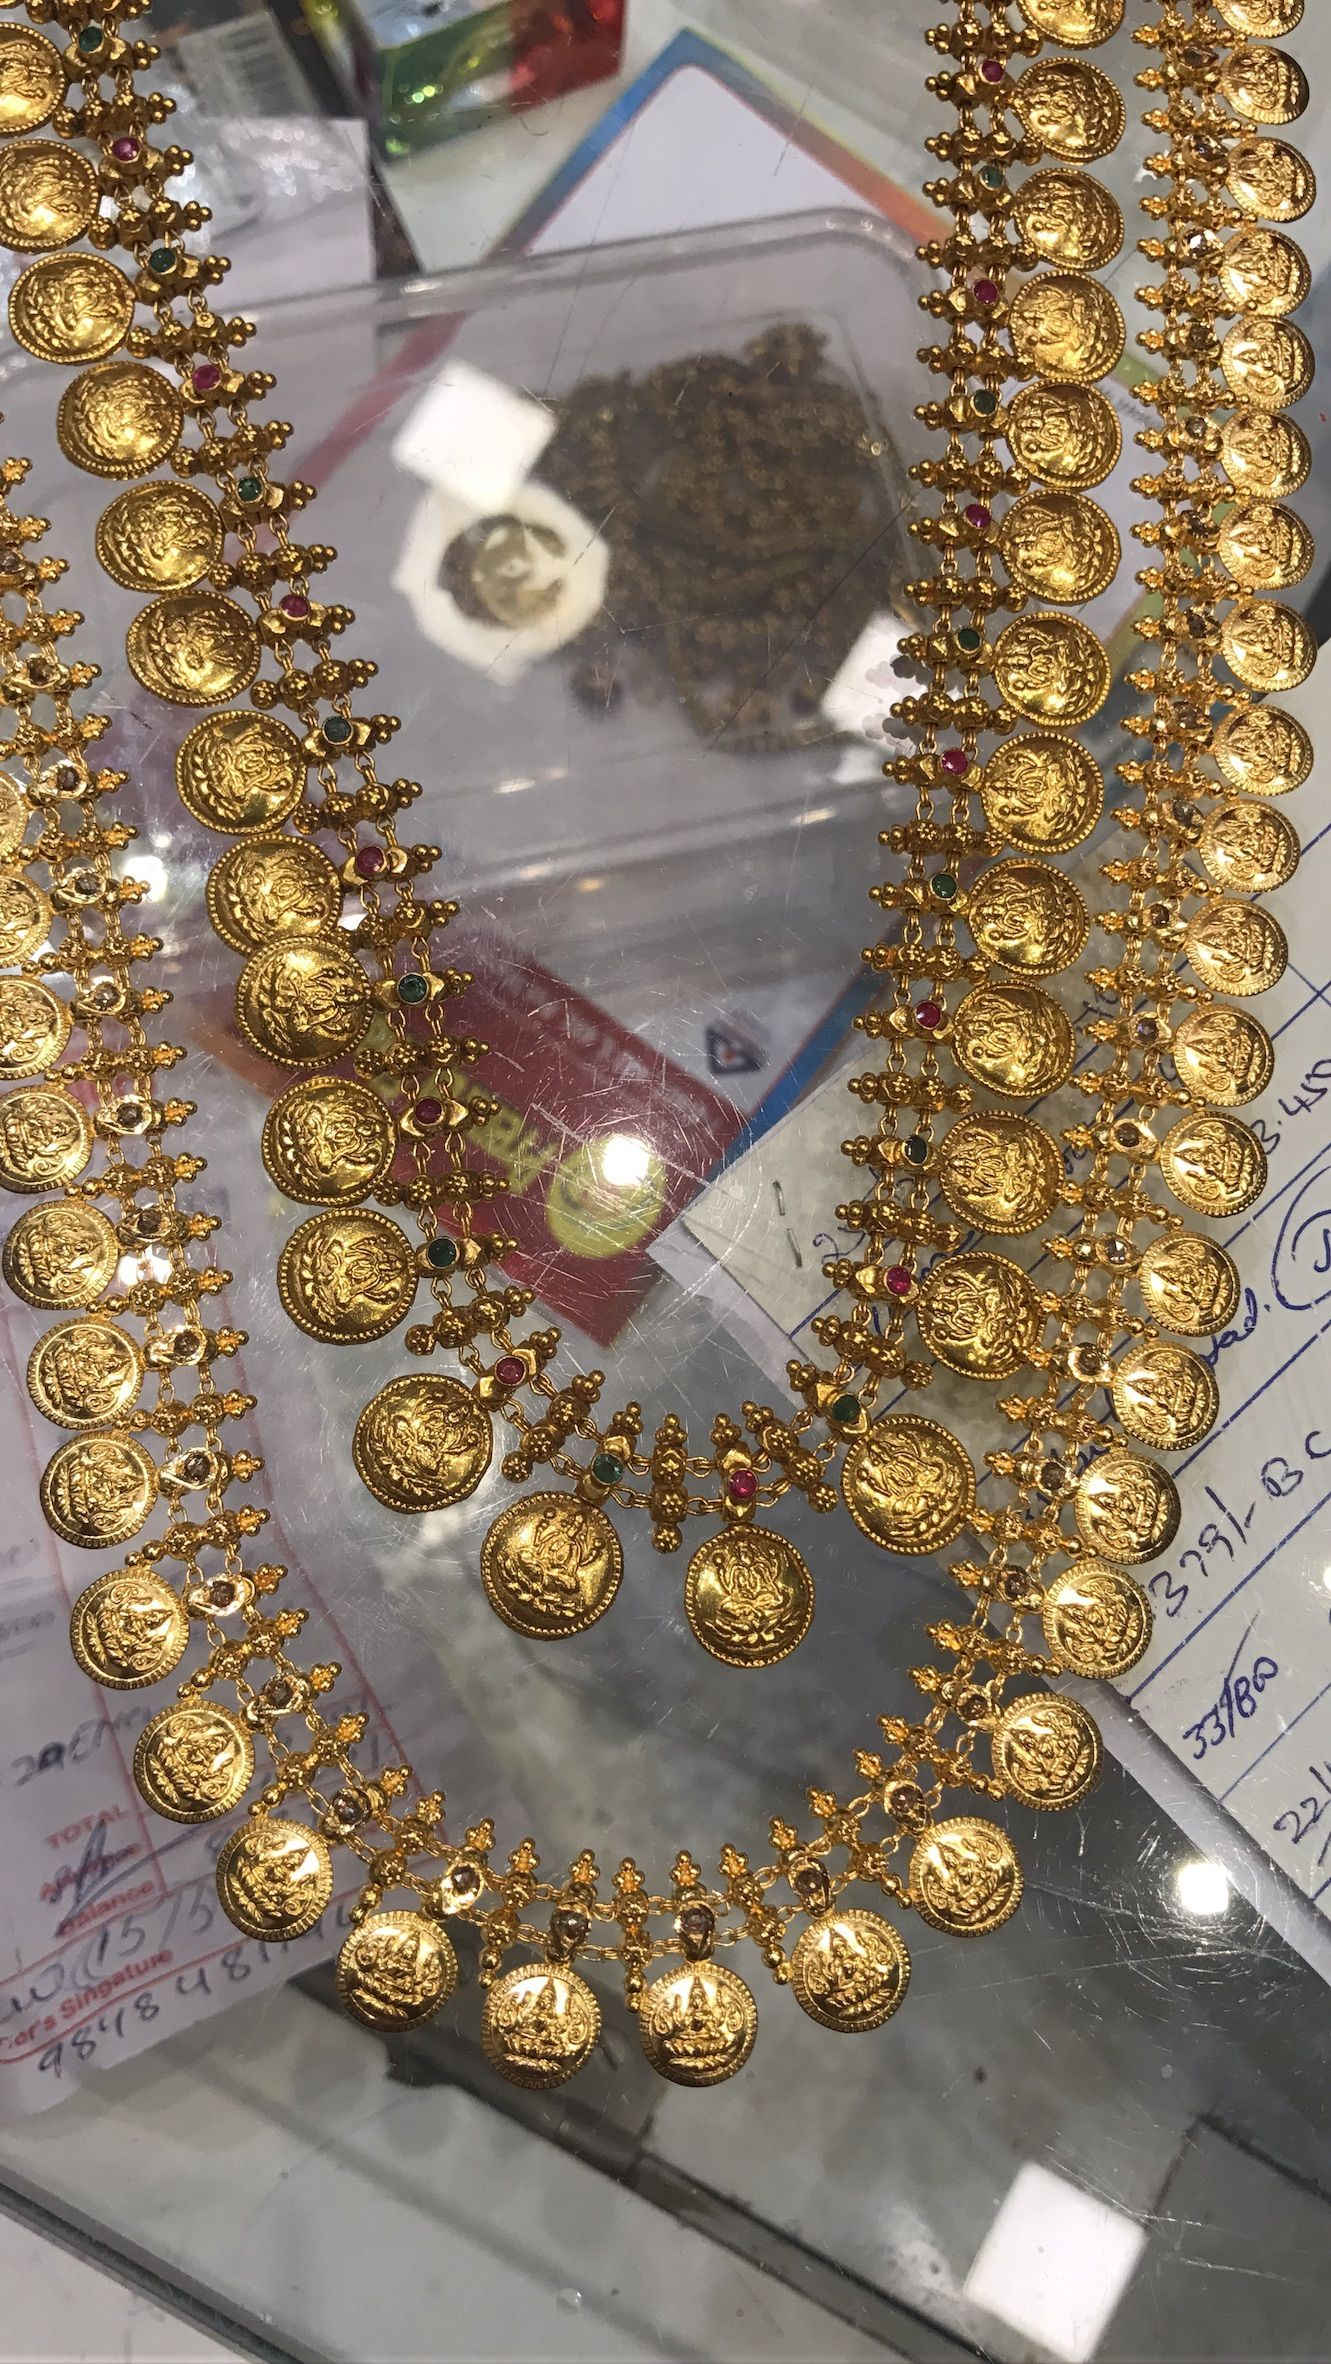 19a34d5456da5 Long necklace Kas 50 GMs *PREMRAJ SHANTILAL JAIN JEWELLERS ...